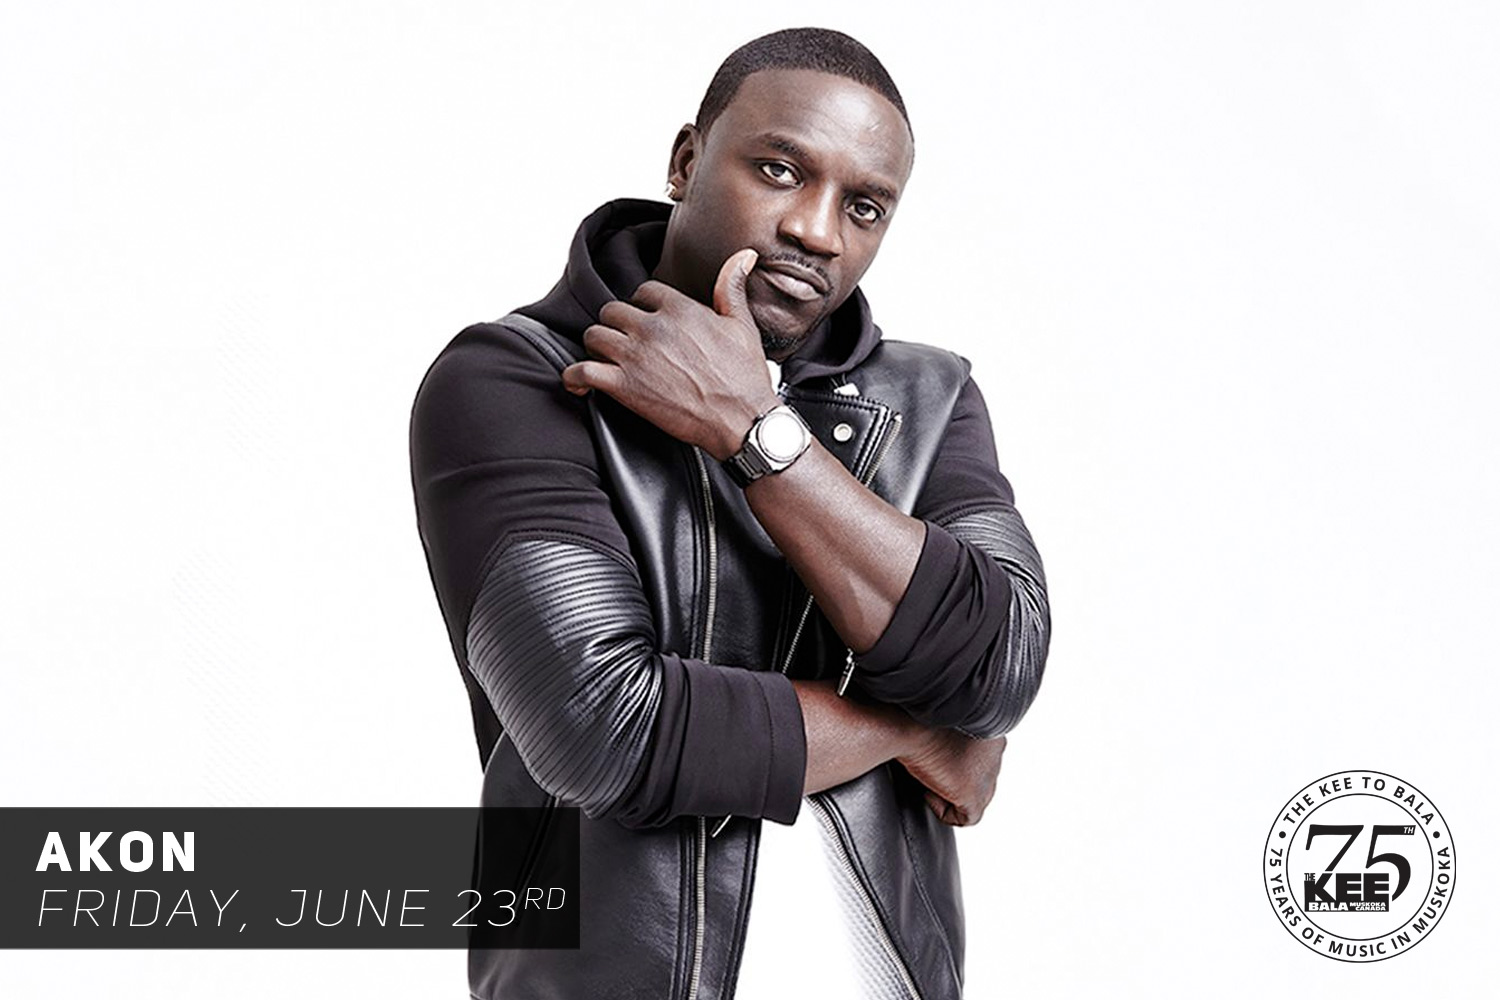 AKON LIVE IN CONCERT – SOLD OUT